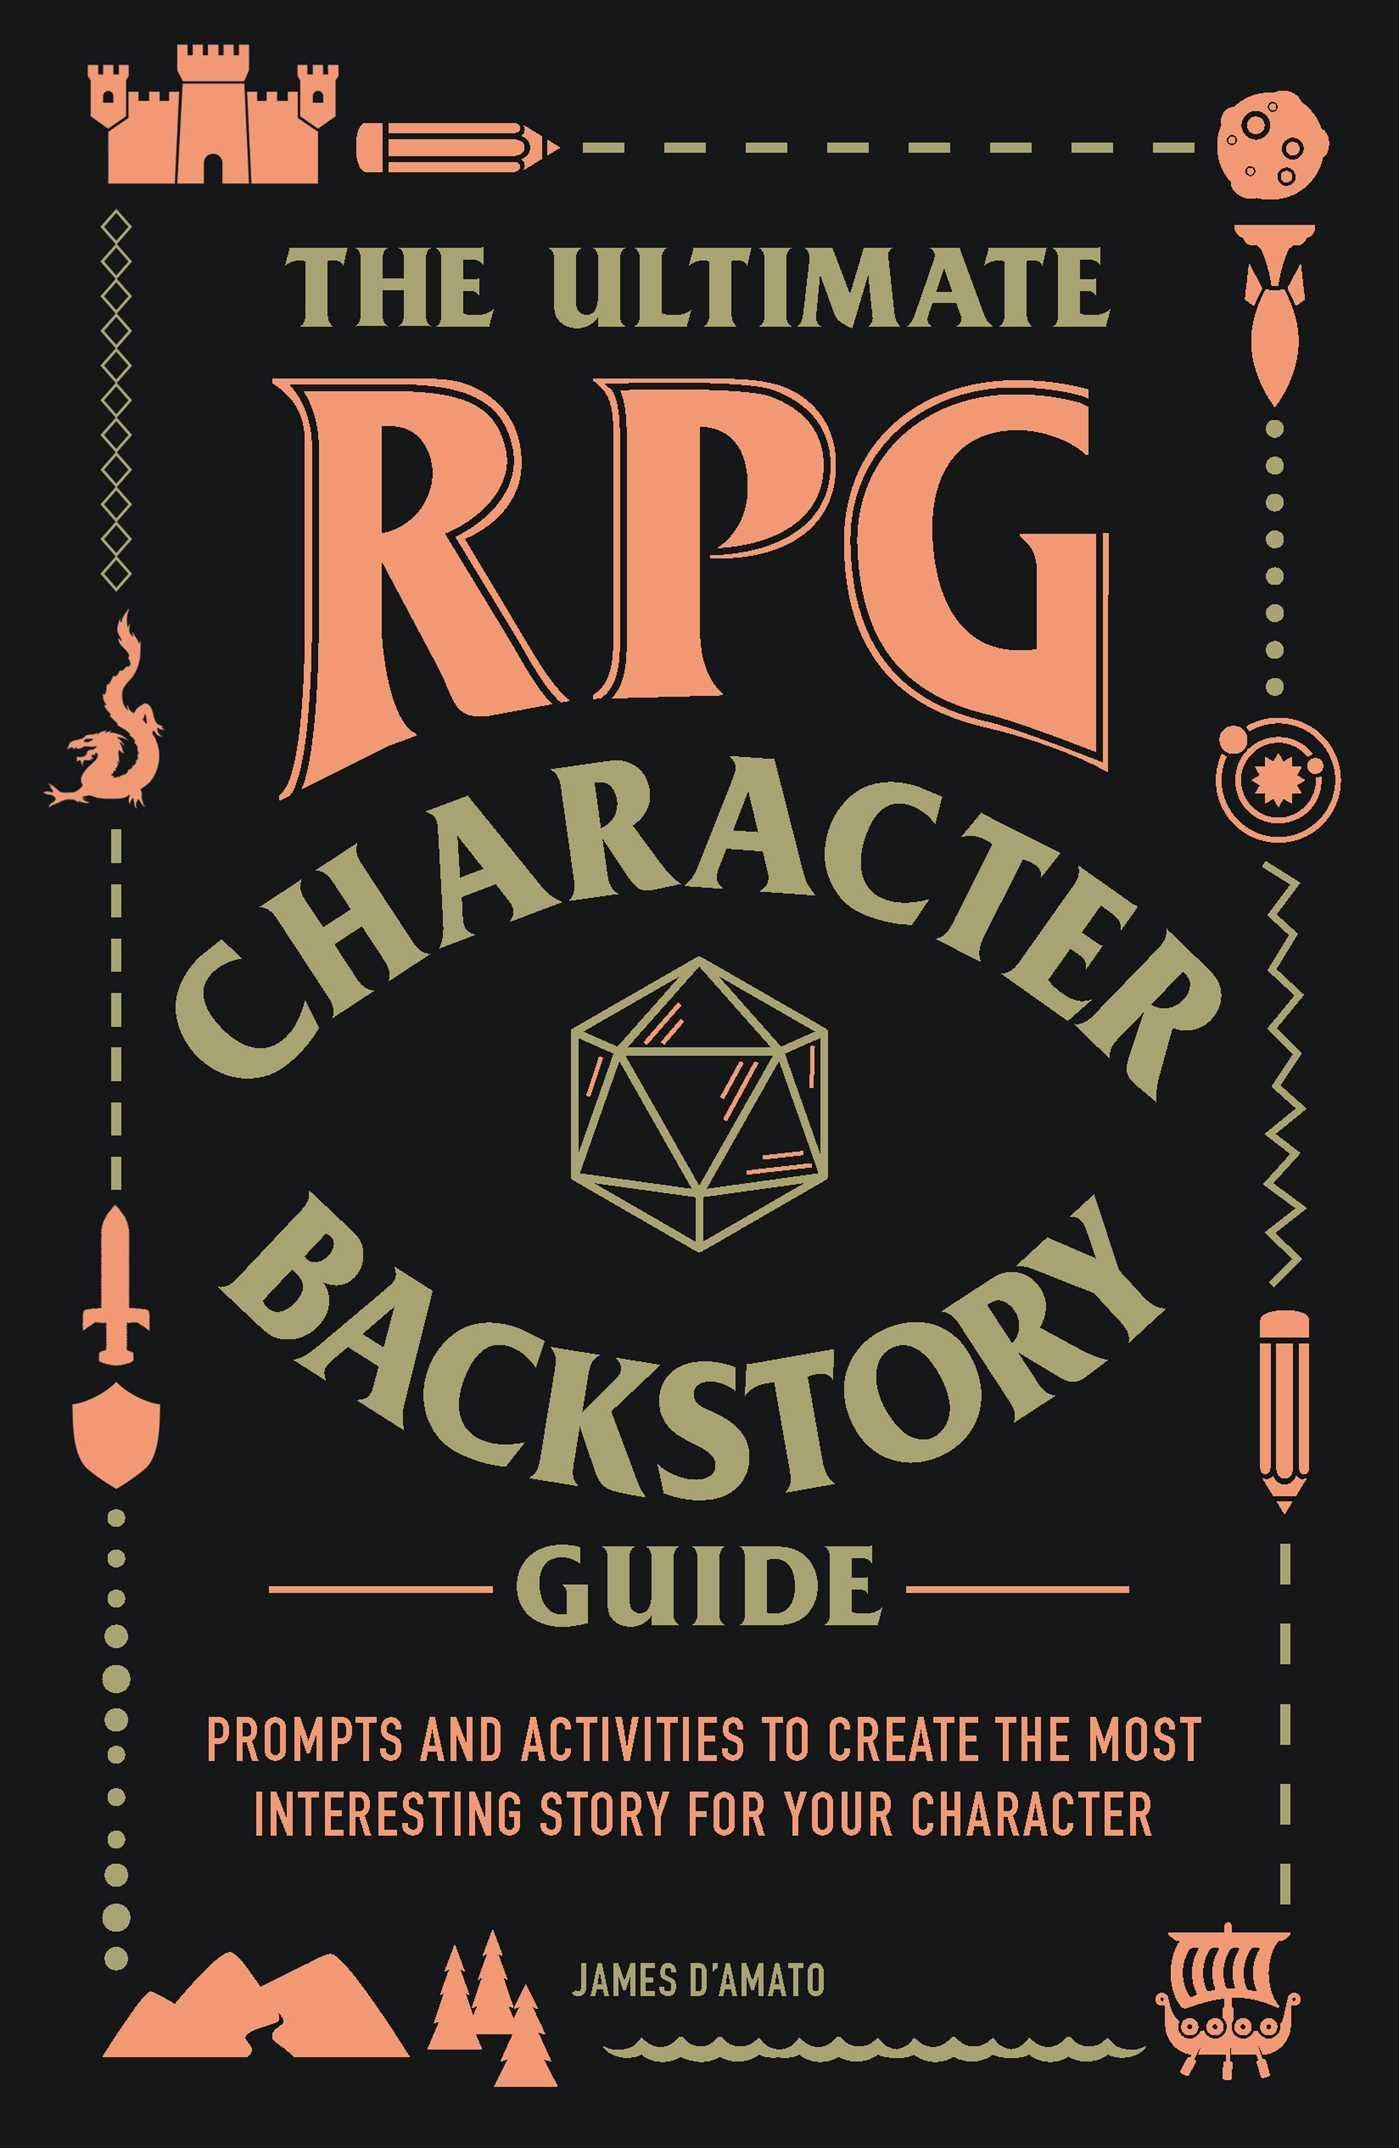 The Ultimate Rpg Character Backstory Guide Prompts And